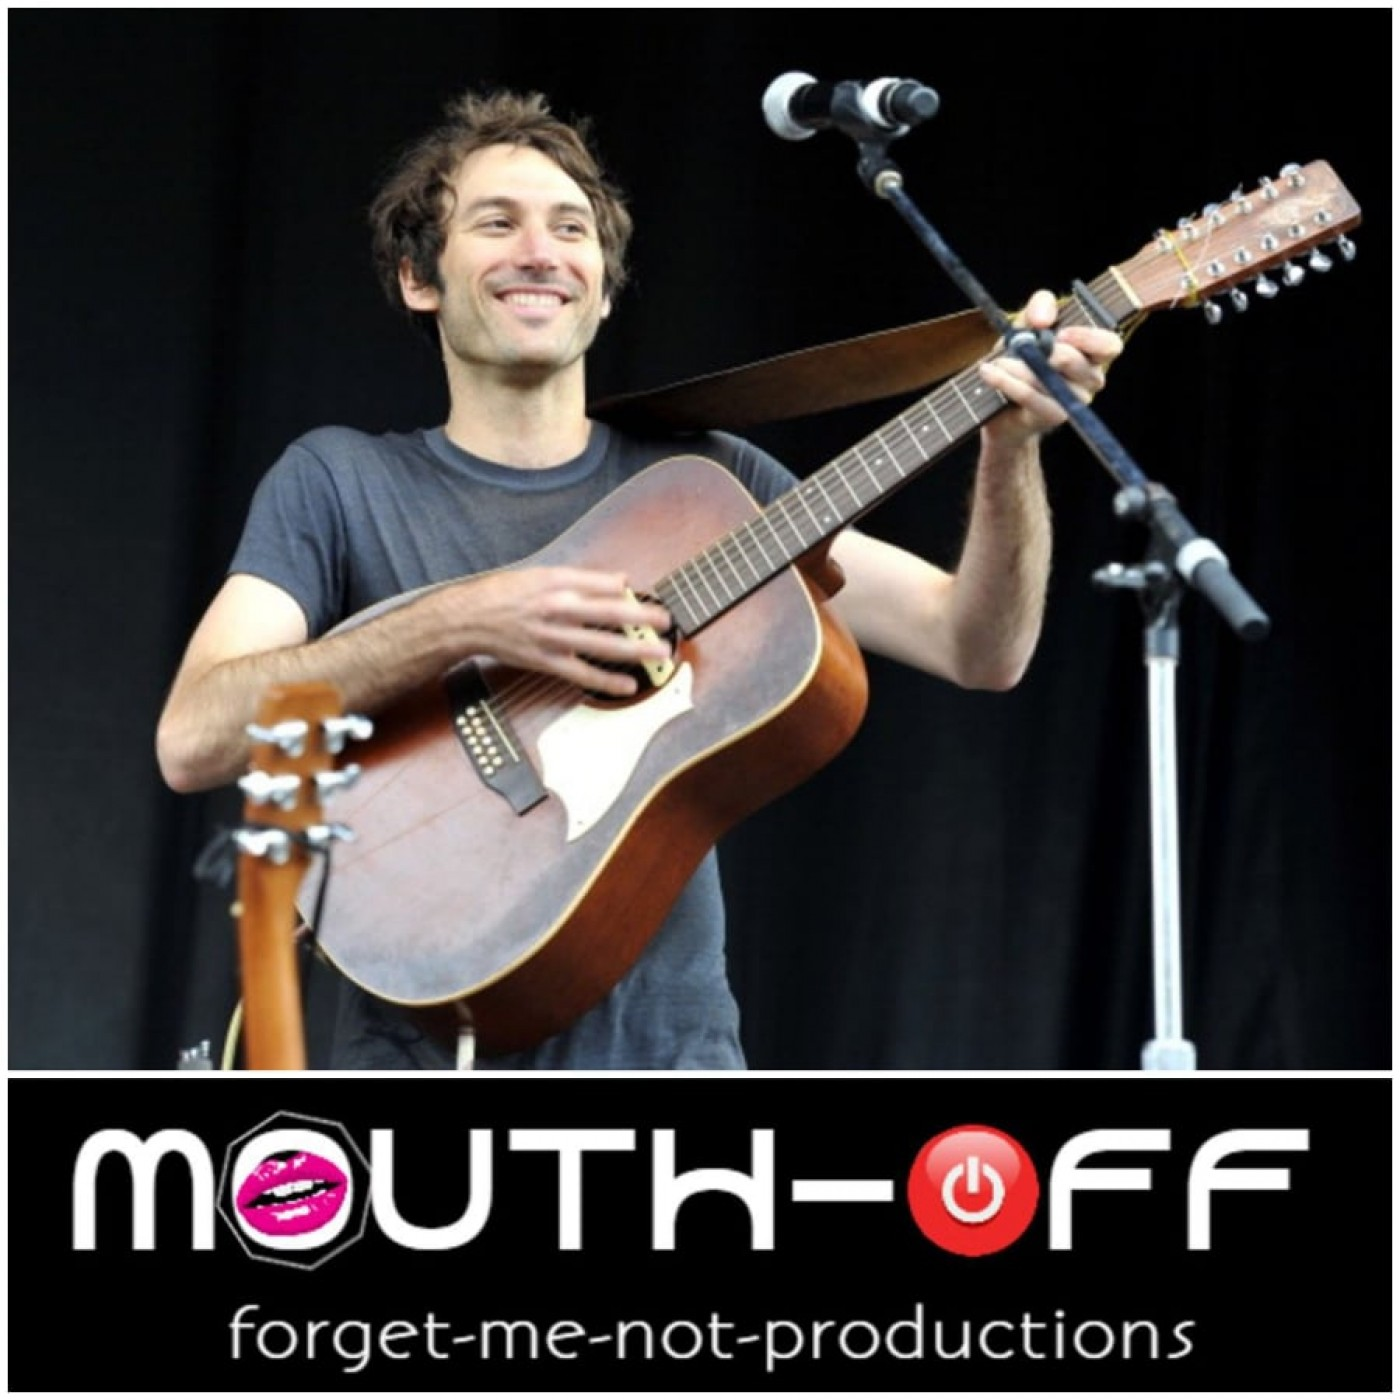 Mouth-Off Episode 18: Matt Costa SPECIAL FEATURE: on the margins of the mainstream